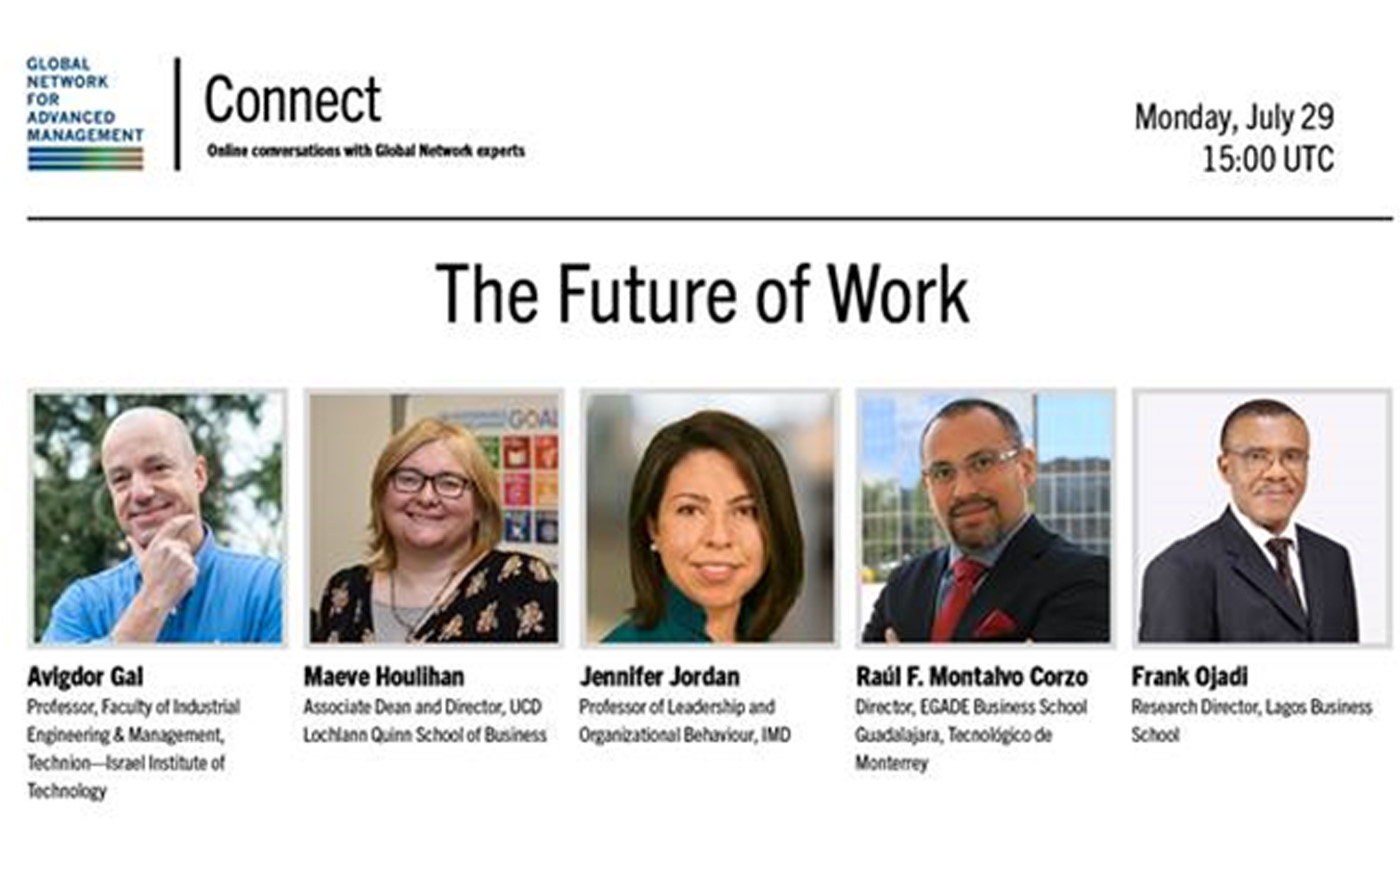 Global Network Connect: The Future of Work